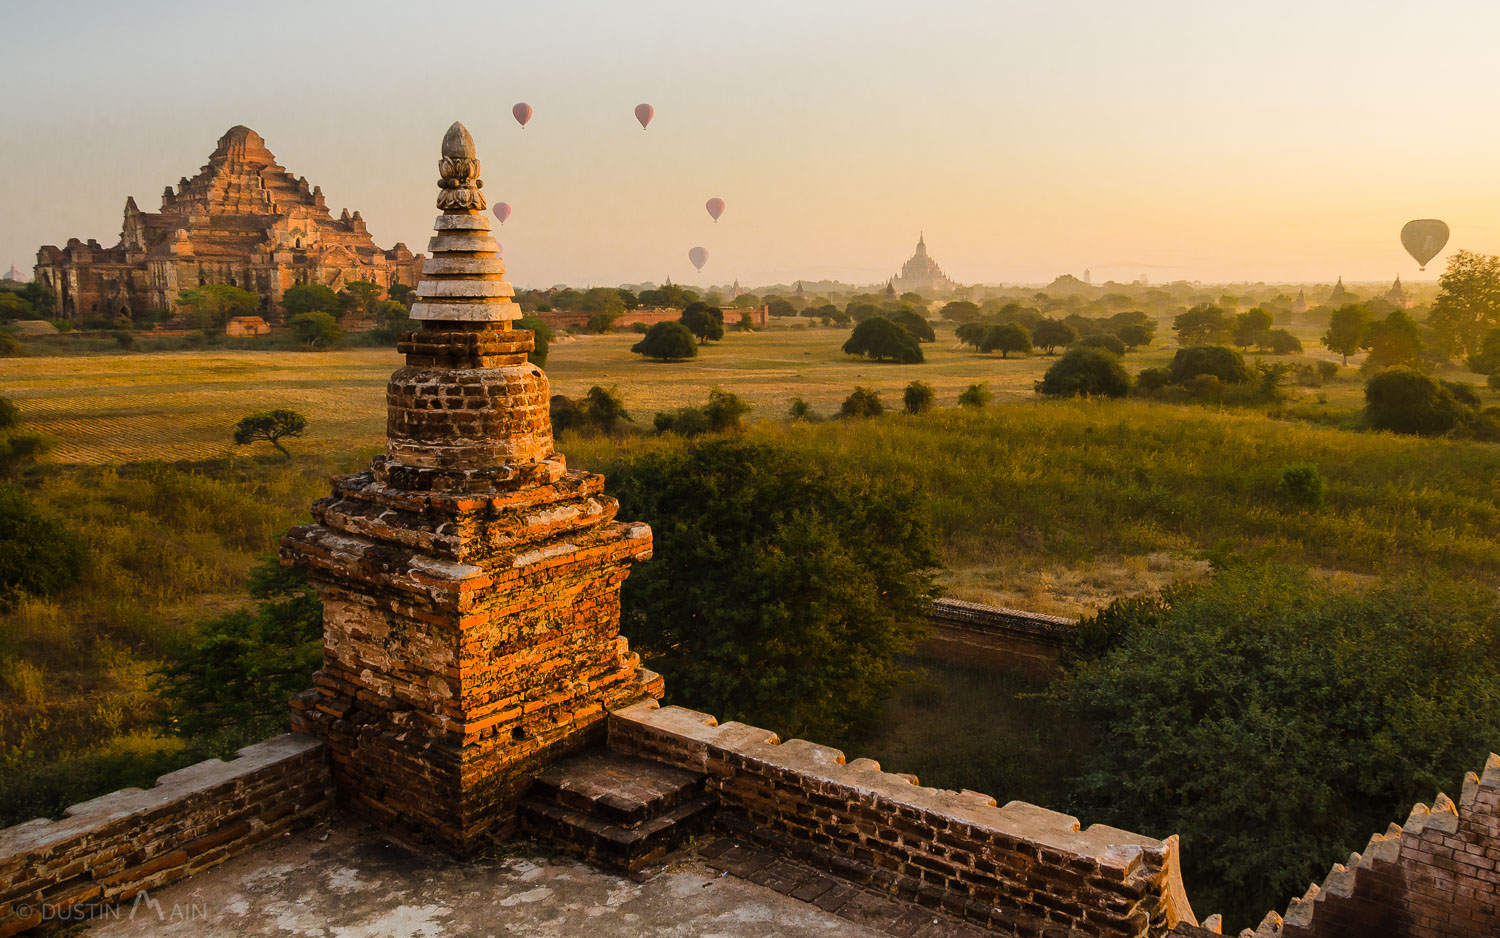 Hot air balloons fill the sky after sunrise in Bagan